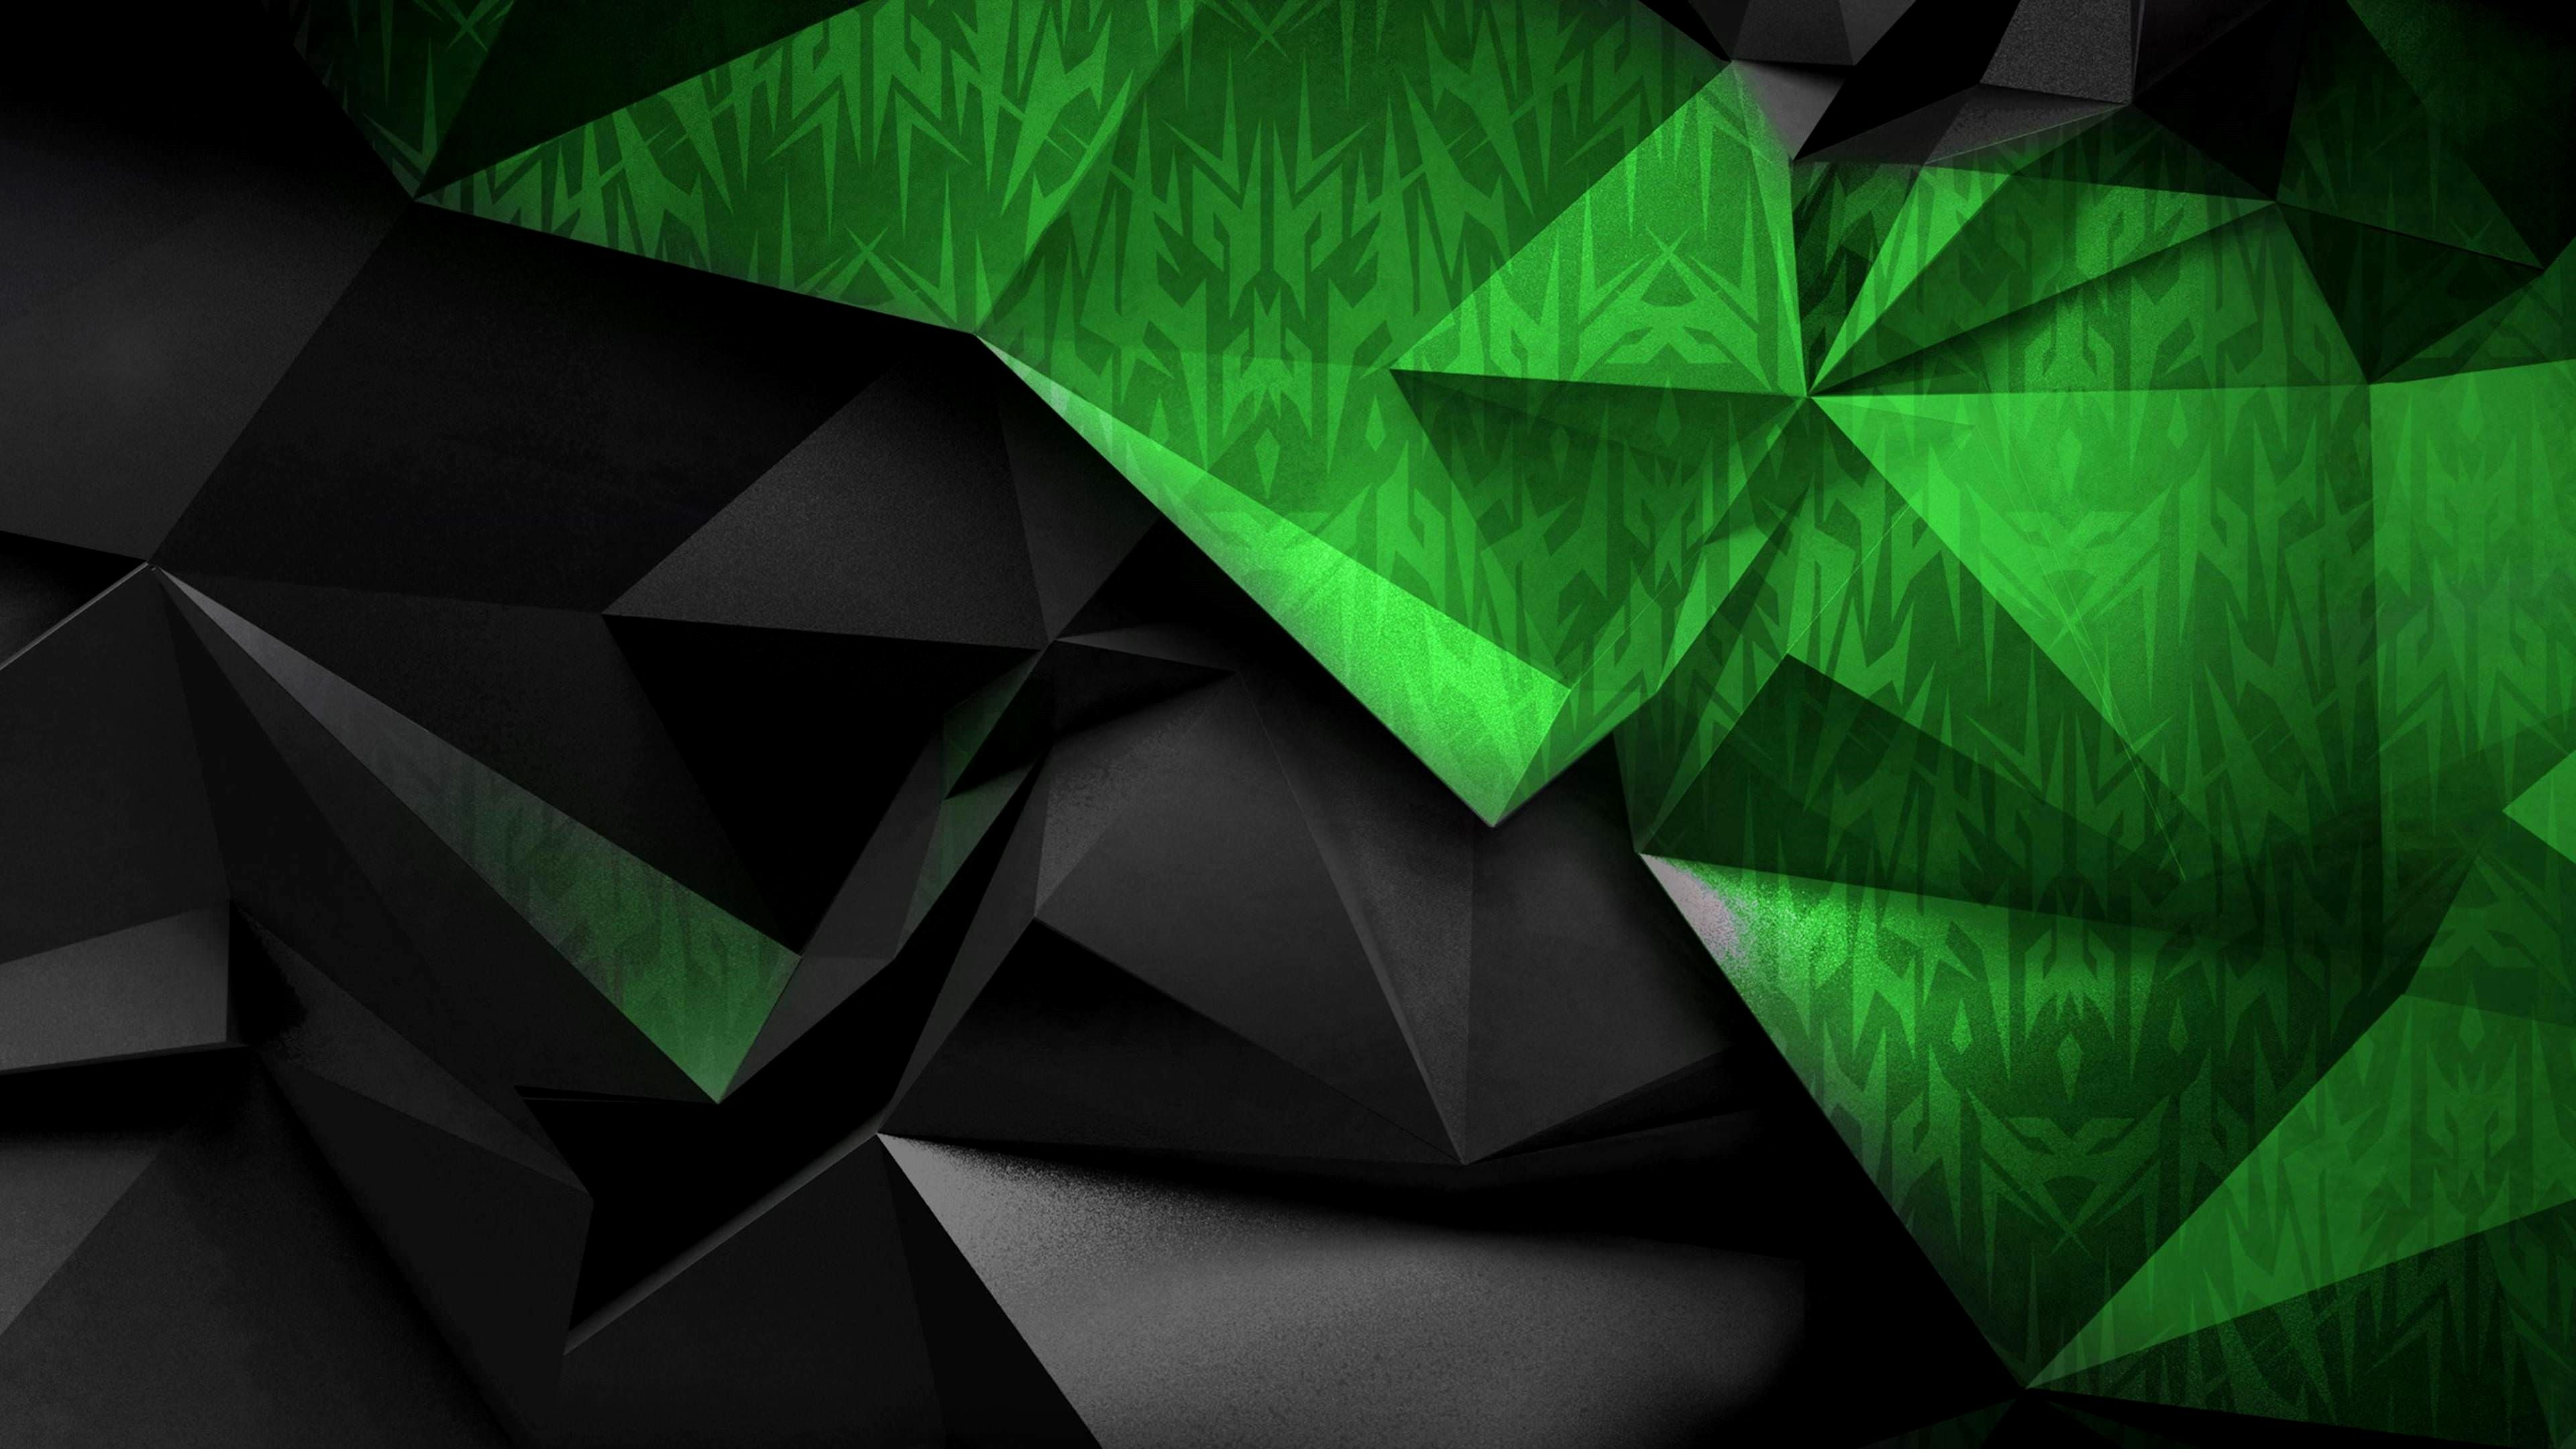 Wallpaper 4k Green Gallery Green And Black Background Green Wallpaper Wallpaper